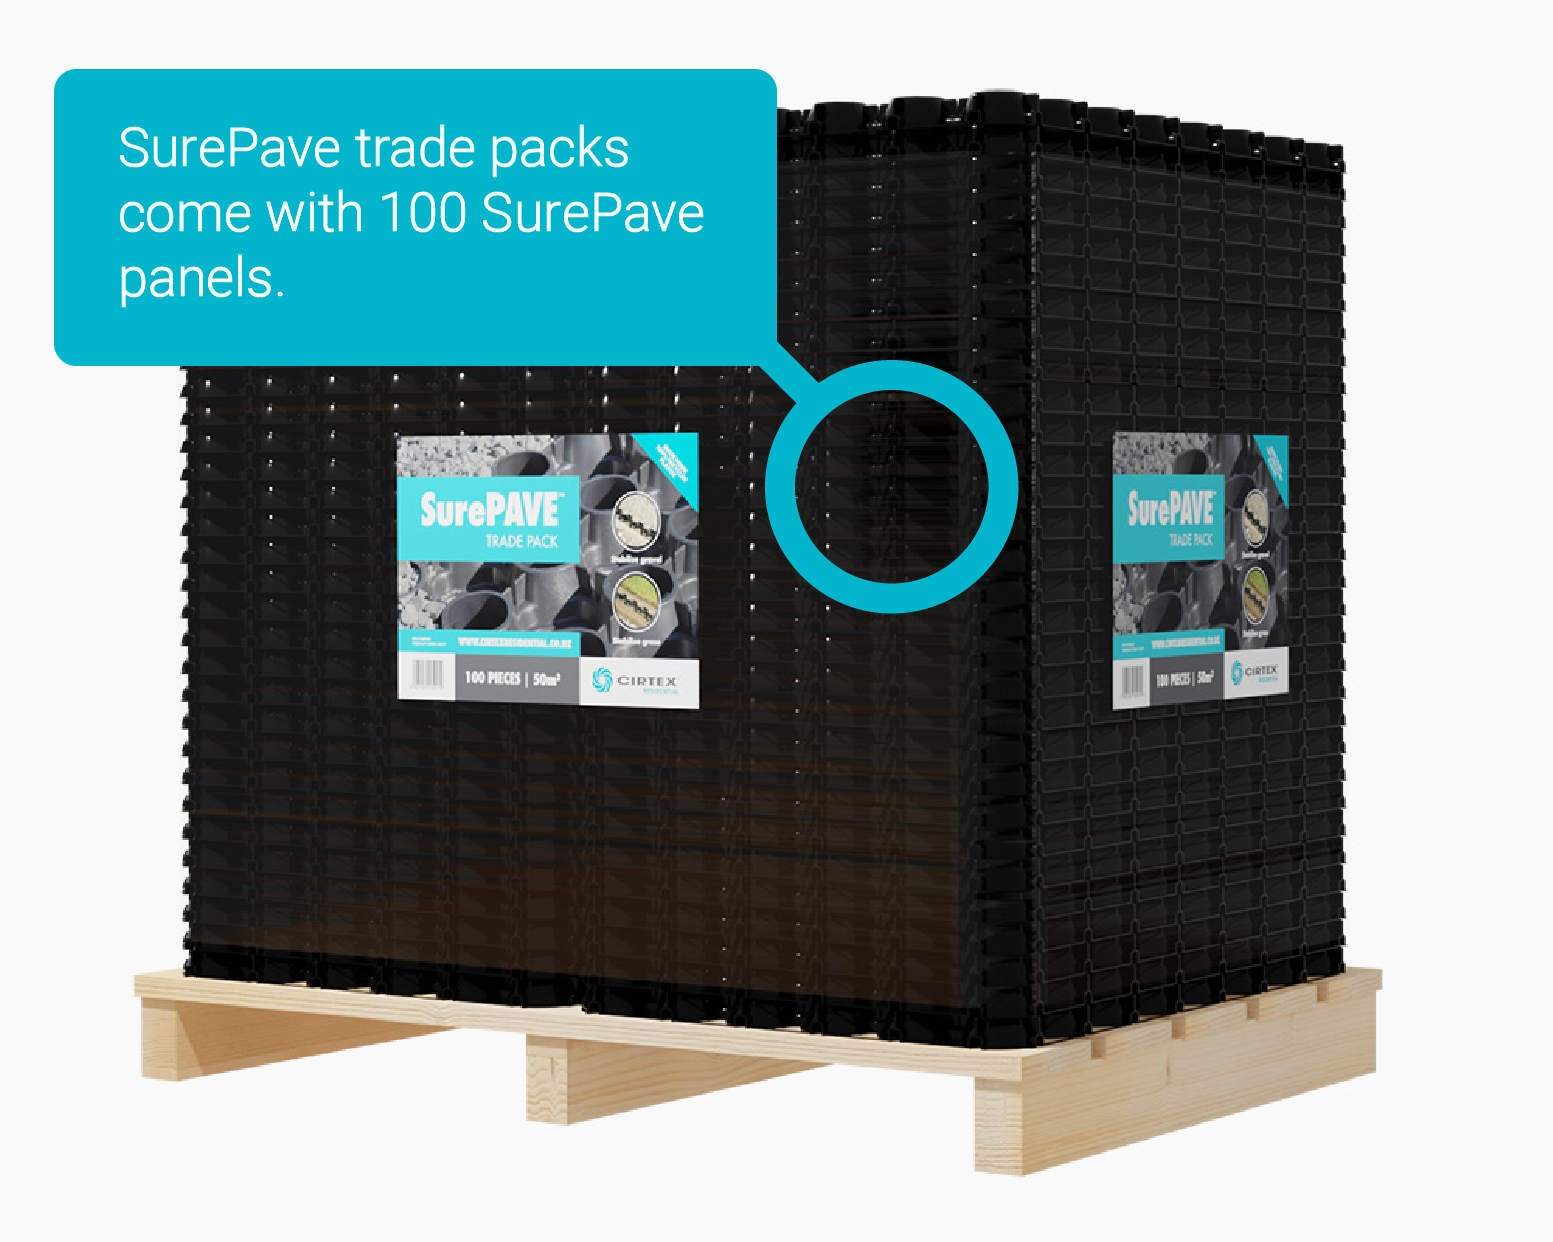 surepave-trade-packs